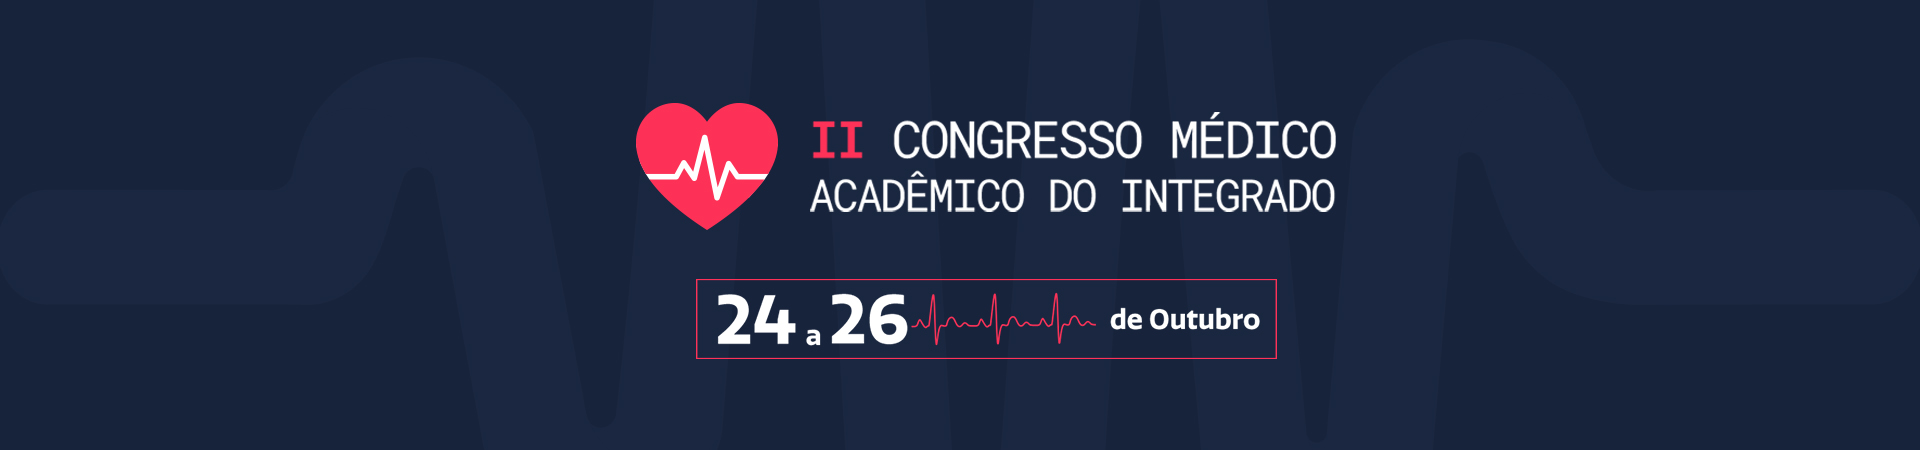 II CONGRESSO MÉDICO ACADÊMICO DO INTEGRADO